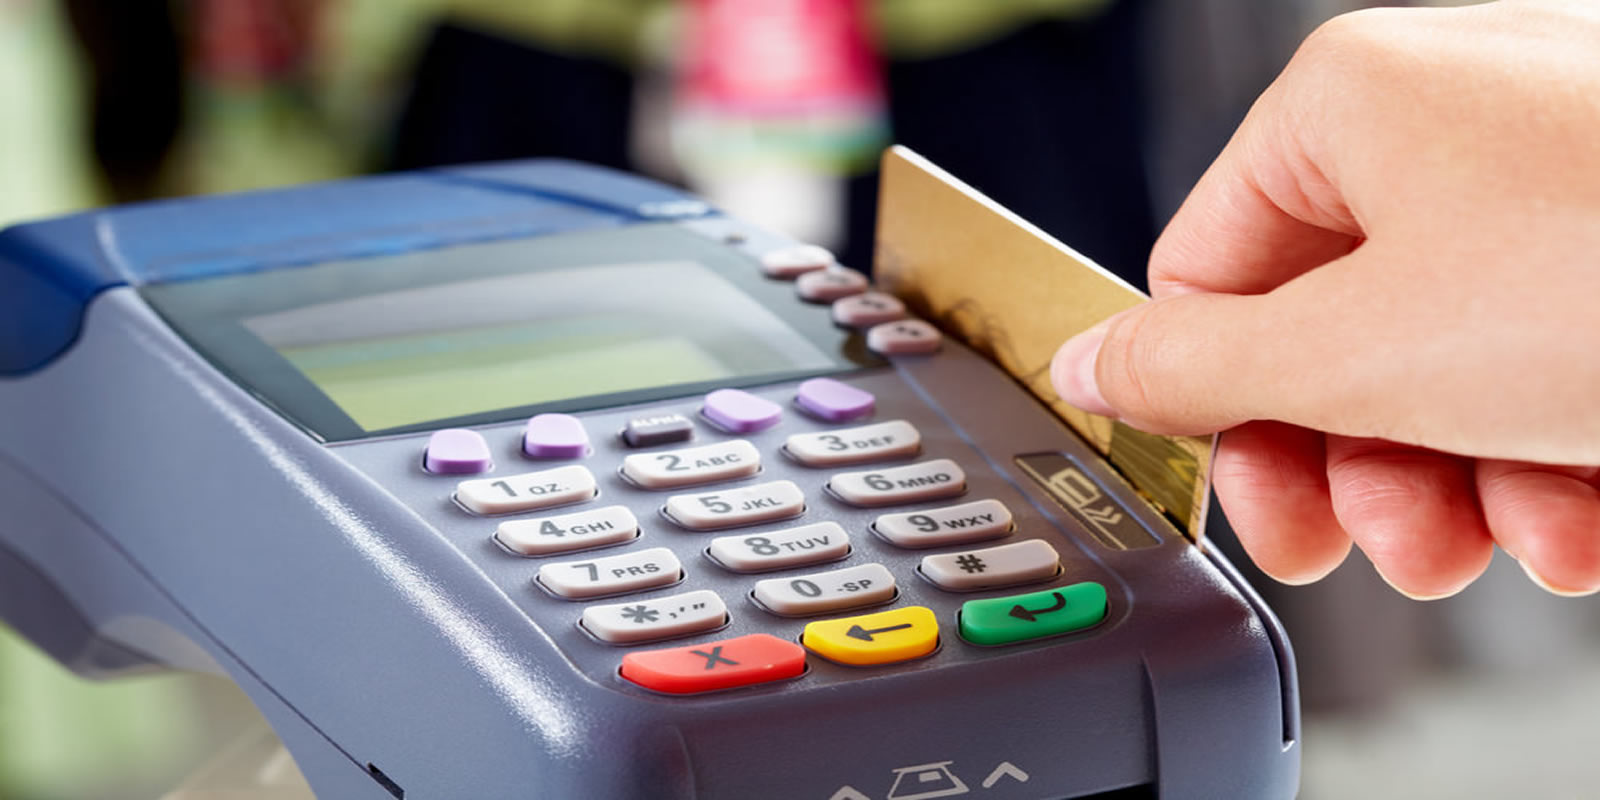 Sales & Leasing of Financial Equipments